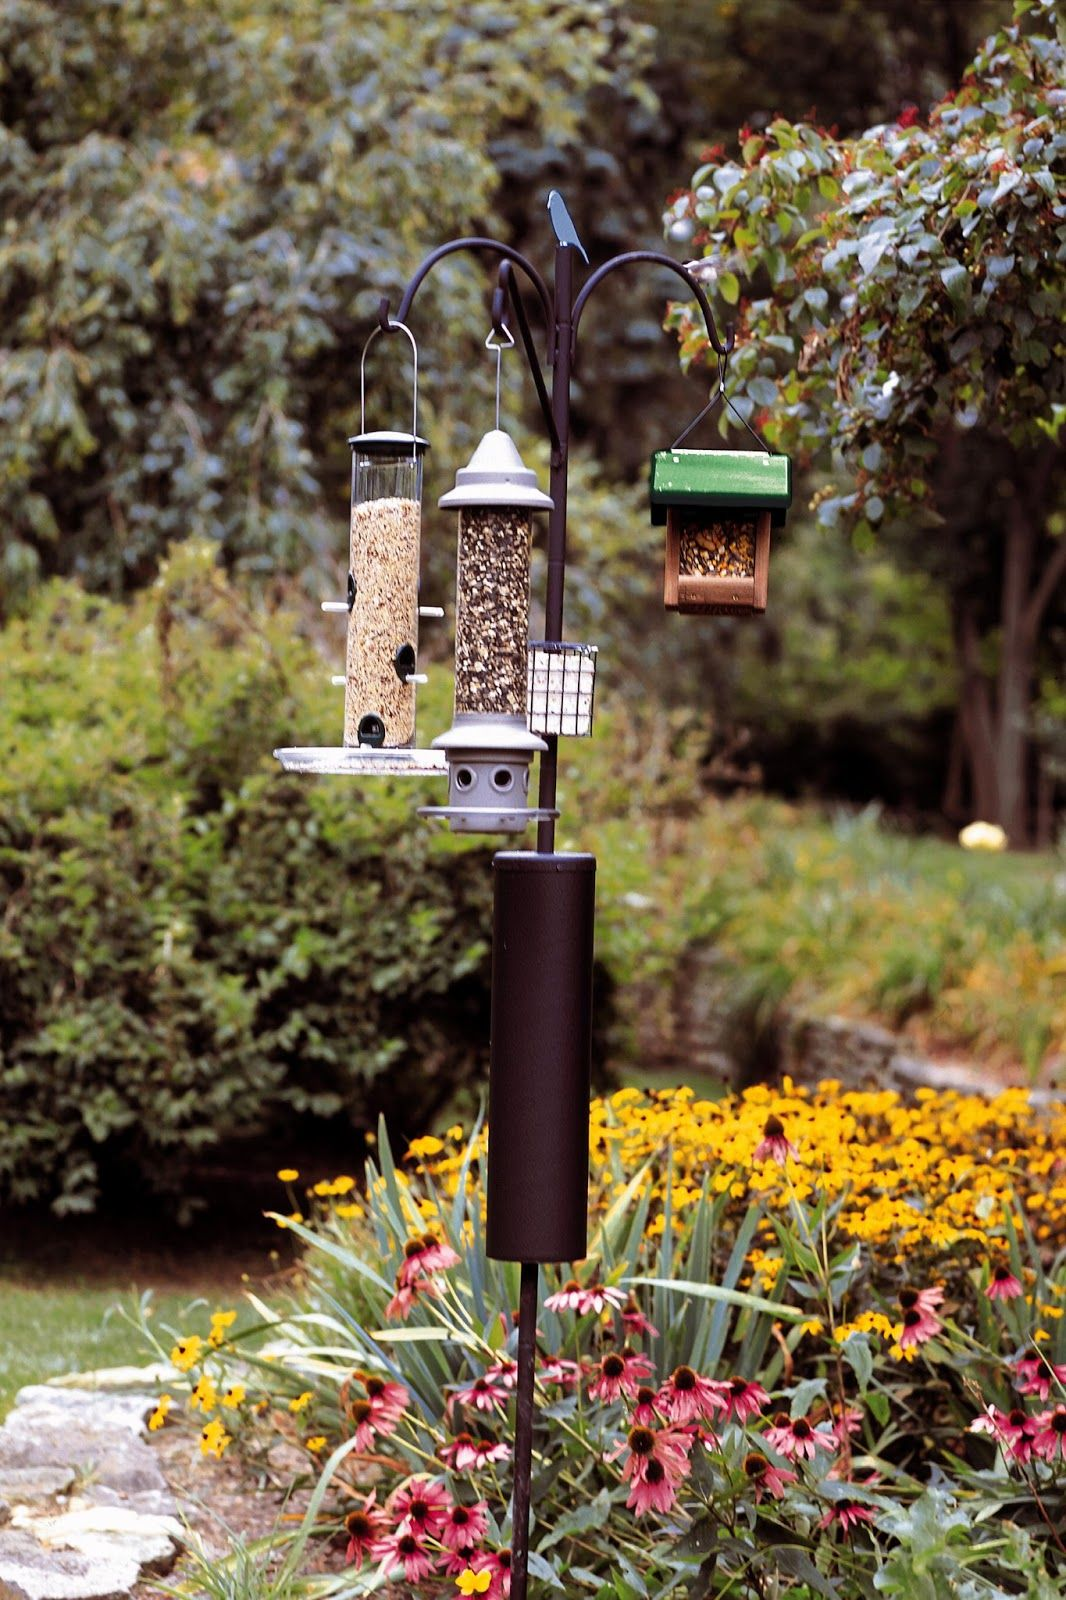 wooden squirel full bird feeder woodpecker proof drinkers original cool absolute and feeders for image poles fancy birds wood unlimited wild with